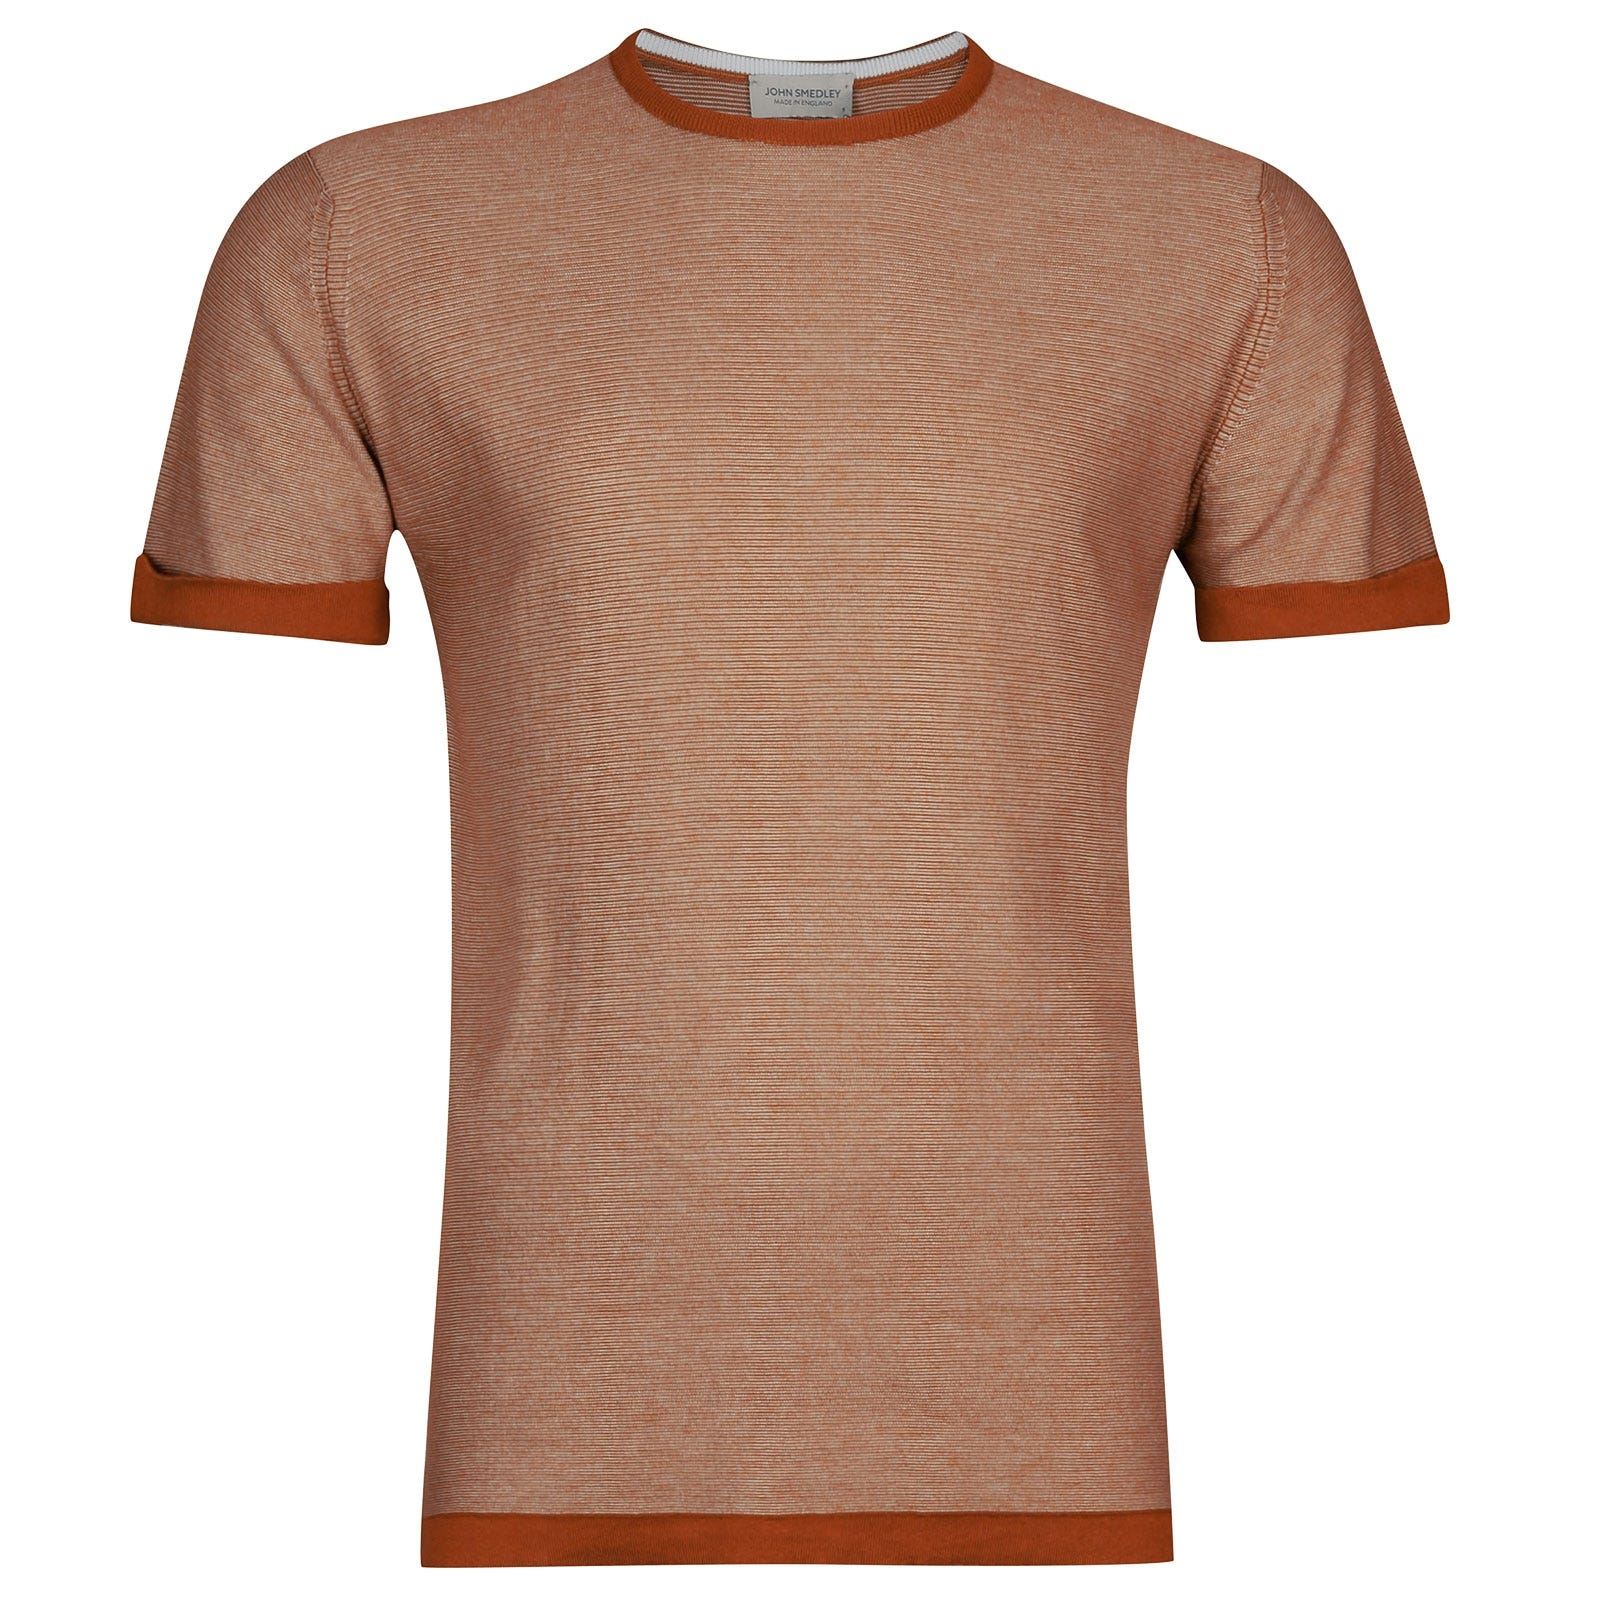 John Smedley benhope Sea Island Cotton T-shirt in Flare Orange/White-M